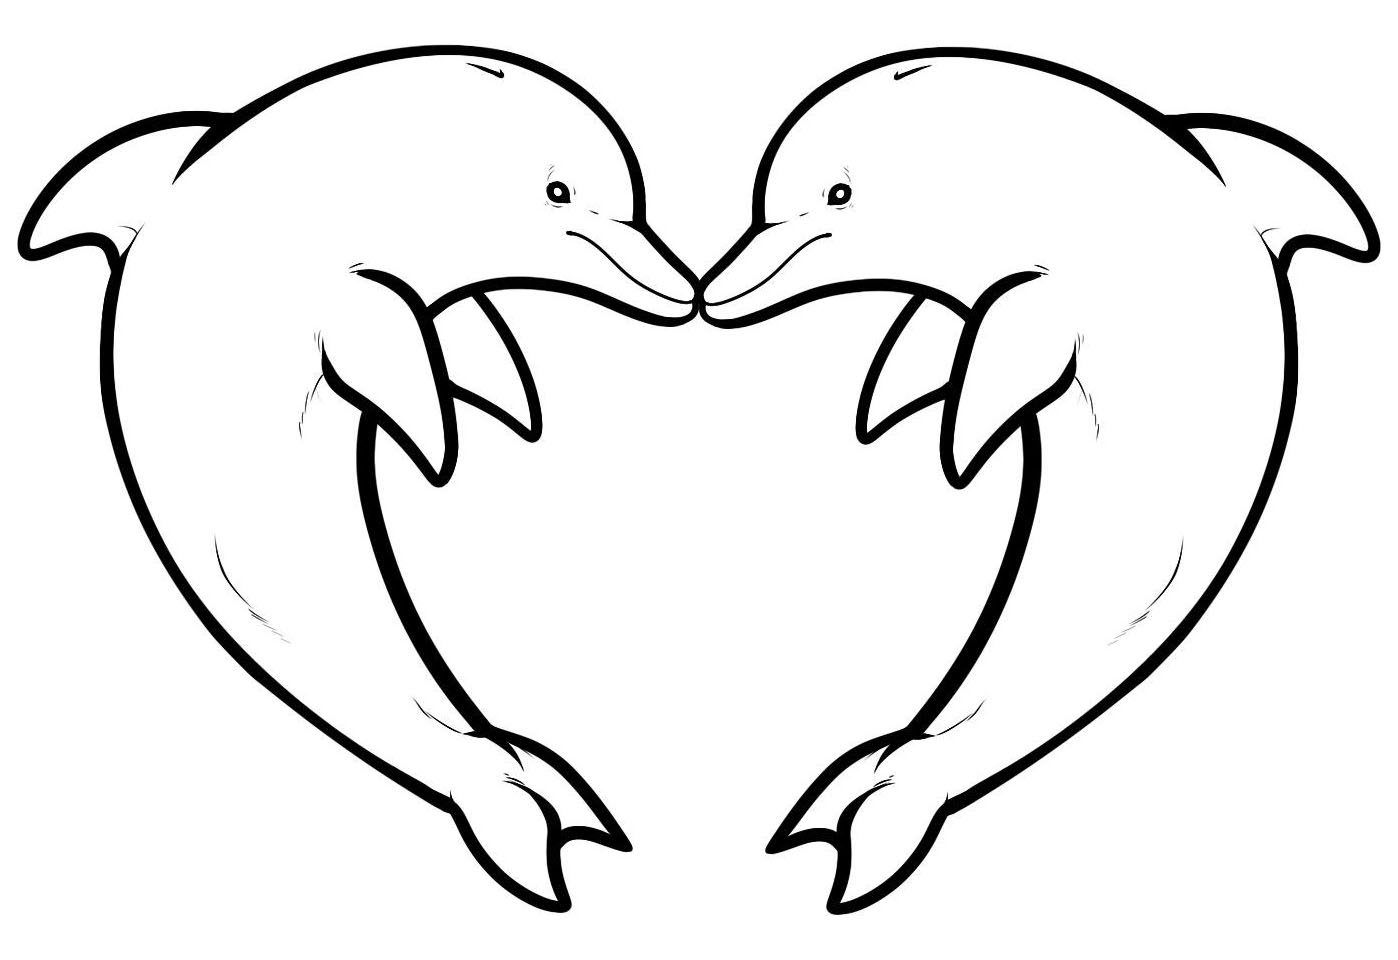 Two Dolphins Forming A Heart